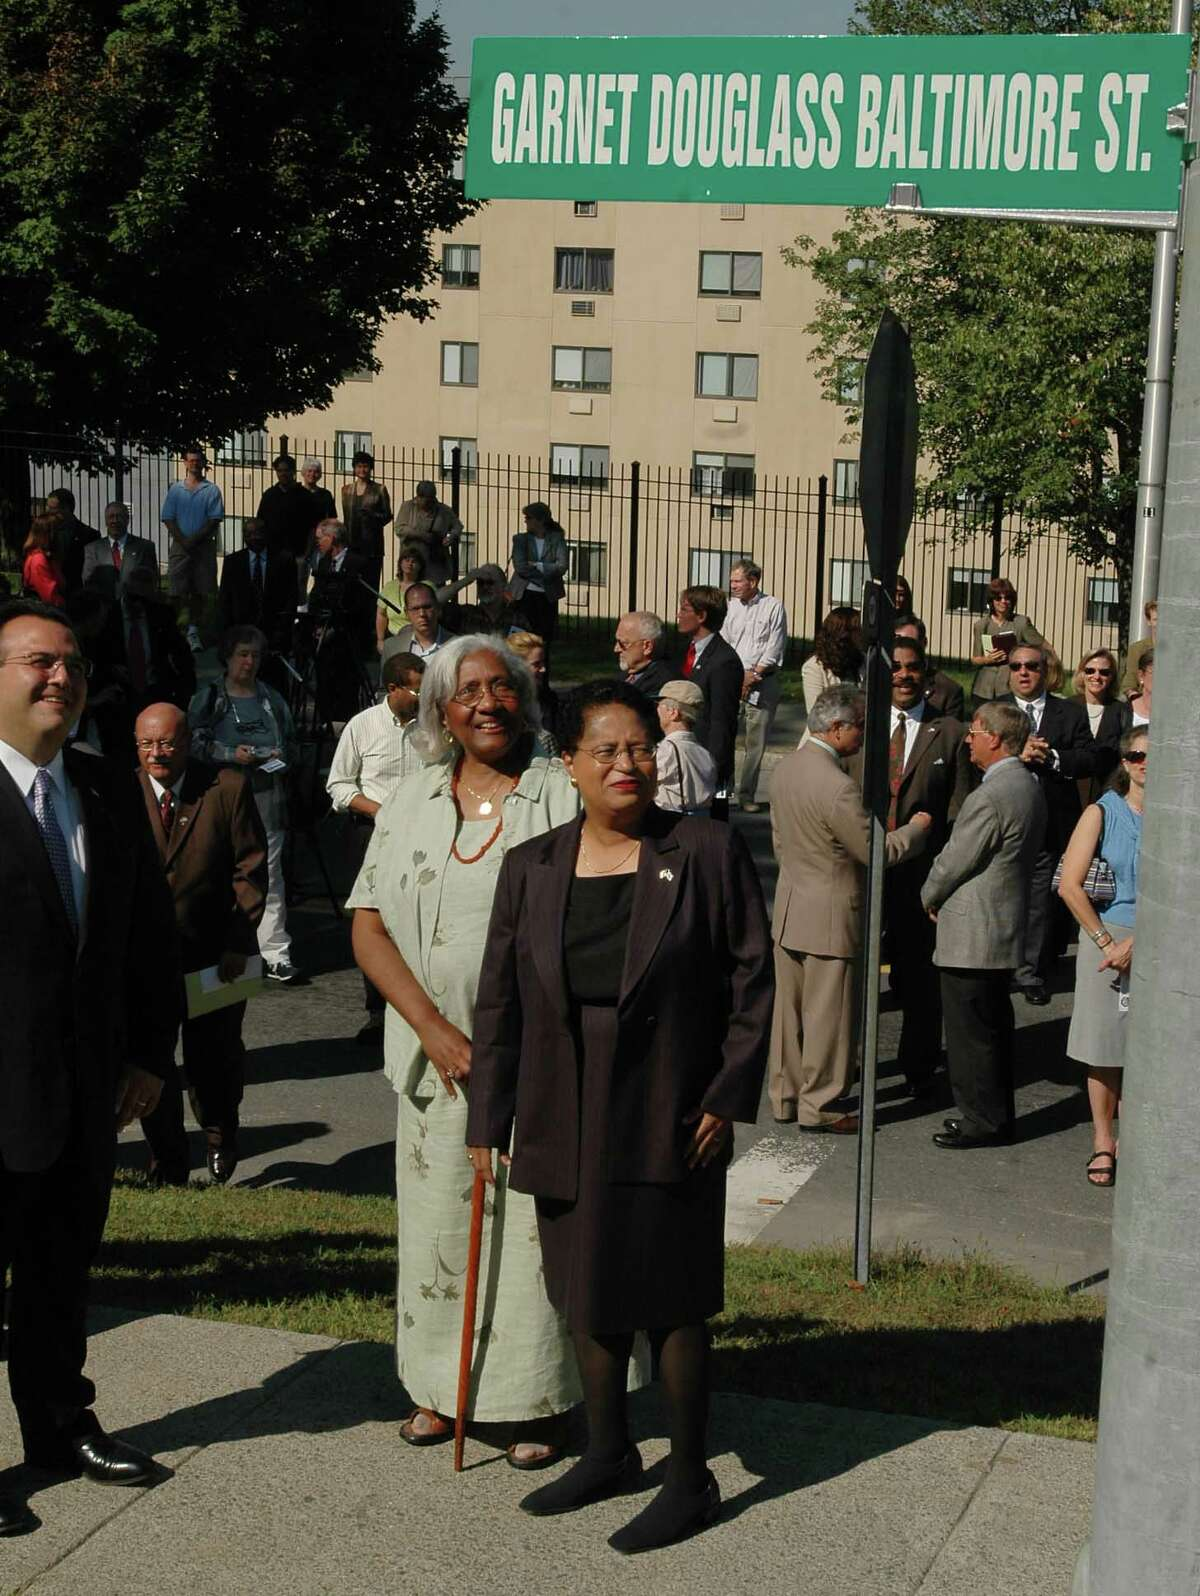 Thursday, Sept. 8, 2005, Troy, NY, A portion of 8th and Federal streets were been renamed Garnet Douglass Baltimore Street to honor the distinguished civil engineer and landscape designer, who was the first African American to earn a bachelor's degree from RPI. Garnet Baltimore was born and lived his life in Troy and designed and engineered Troy's Prospect Park, and Oakwood Cemetery, and still has local relatives in the community. L-R: At the unveiling of the street sign were then-Troy Mayor Harry Tutunjian;Baltimore's first cousin, three times removed, Jannie Daggs, of Cohoes, and RPI College President Shirley Ann Jackson, looking at the new sign. Baltimore was inducted to the Rensselaer Alumni Hall of Fame the following day, Sept. 9, 2005.LUANNE M. FERRIS / TIMES UNION